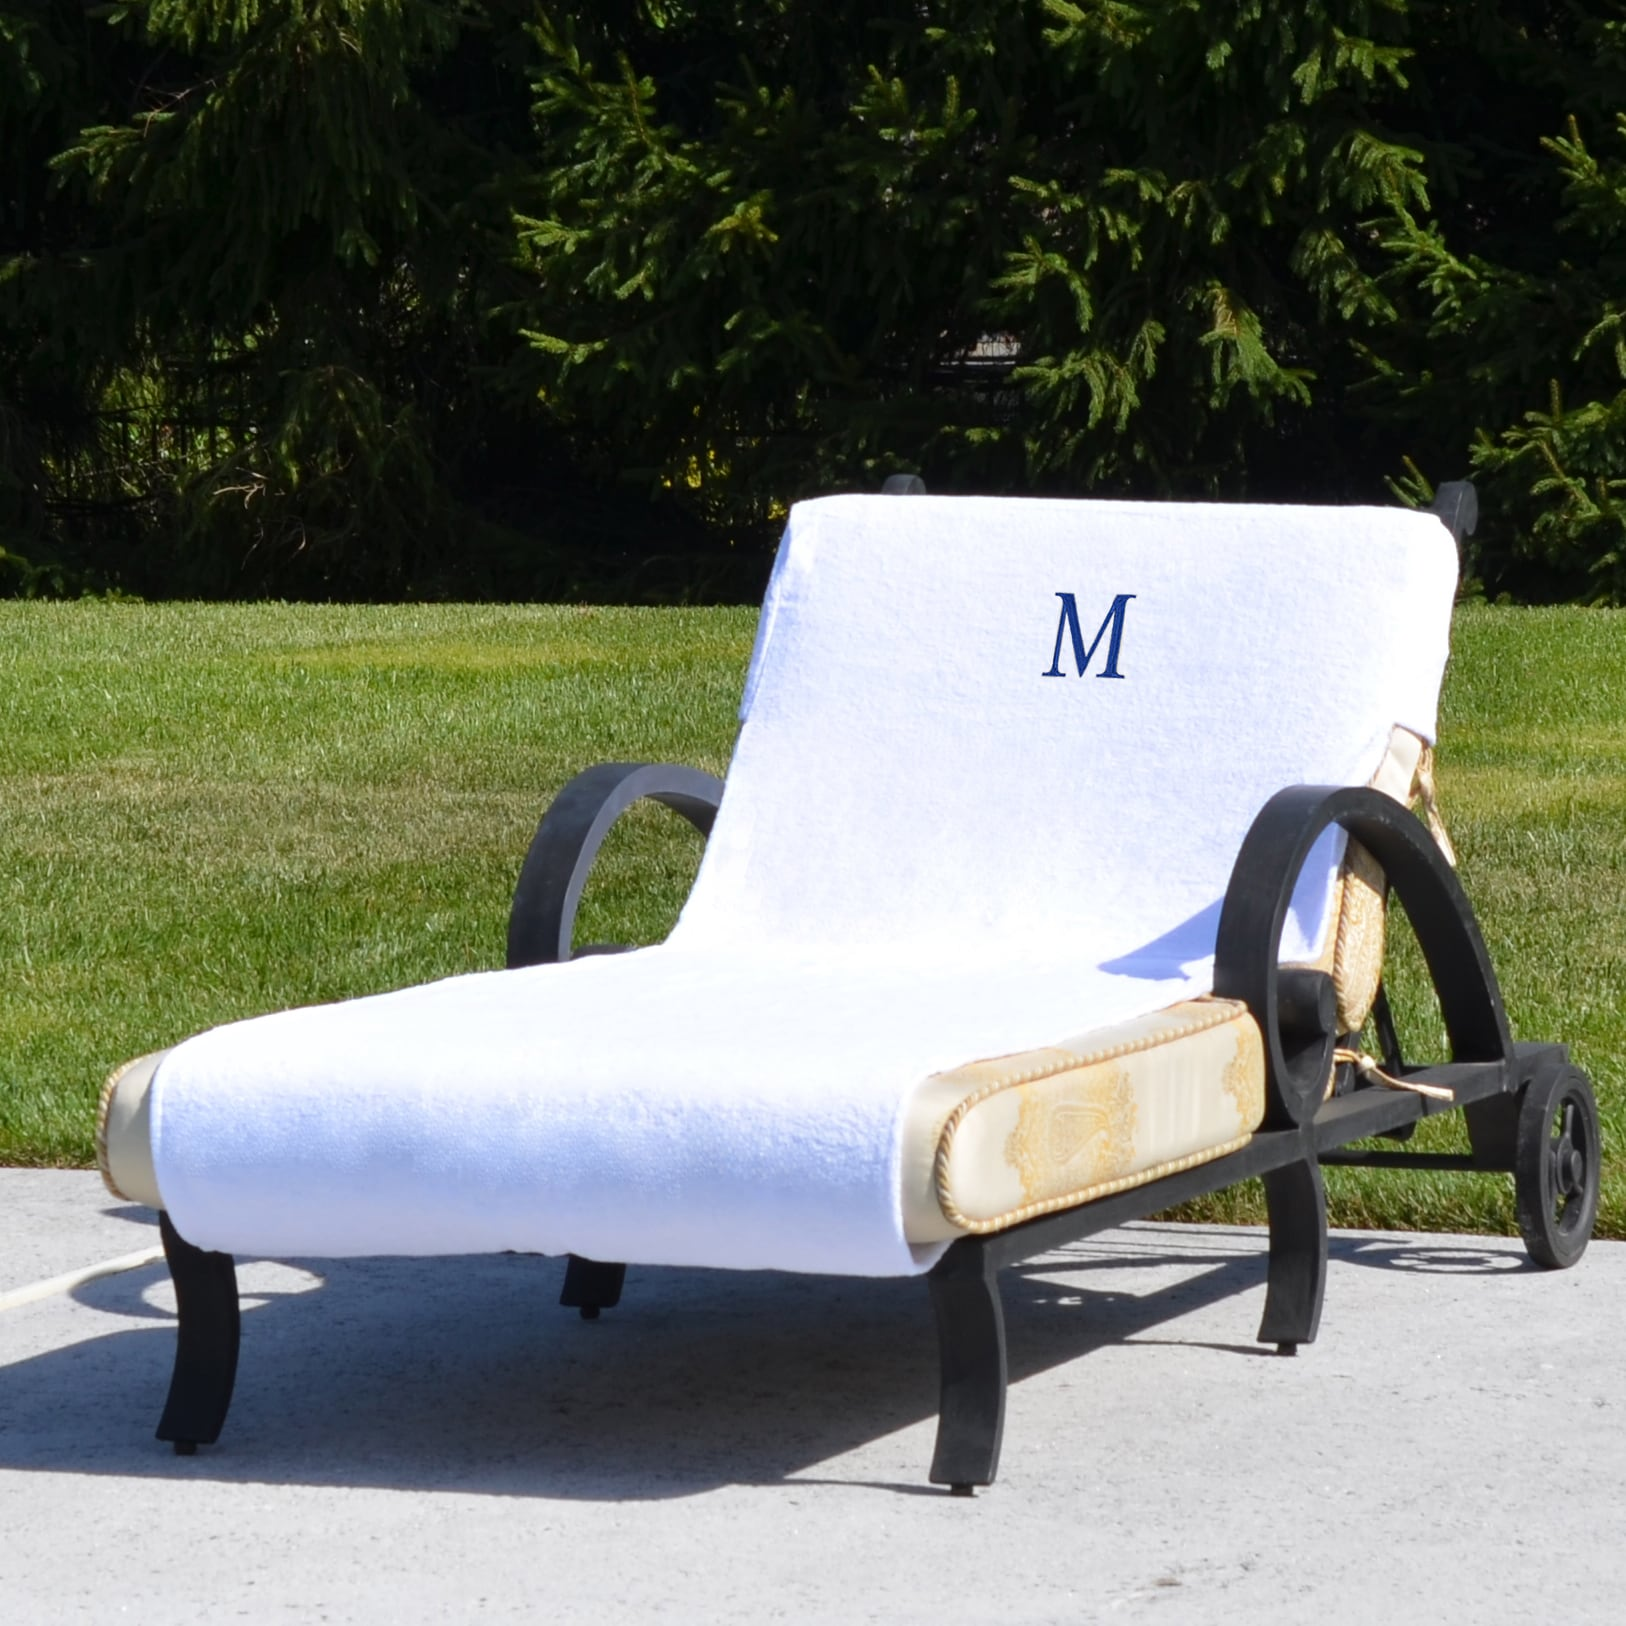 chase sofa chair chairs beautiful of lawn lovely chaise covers lounge luxury